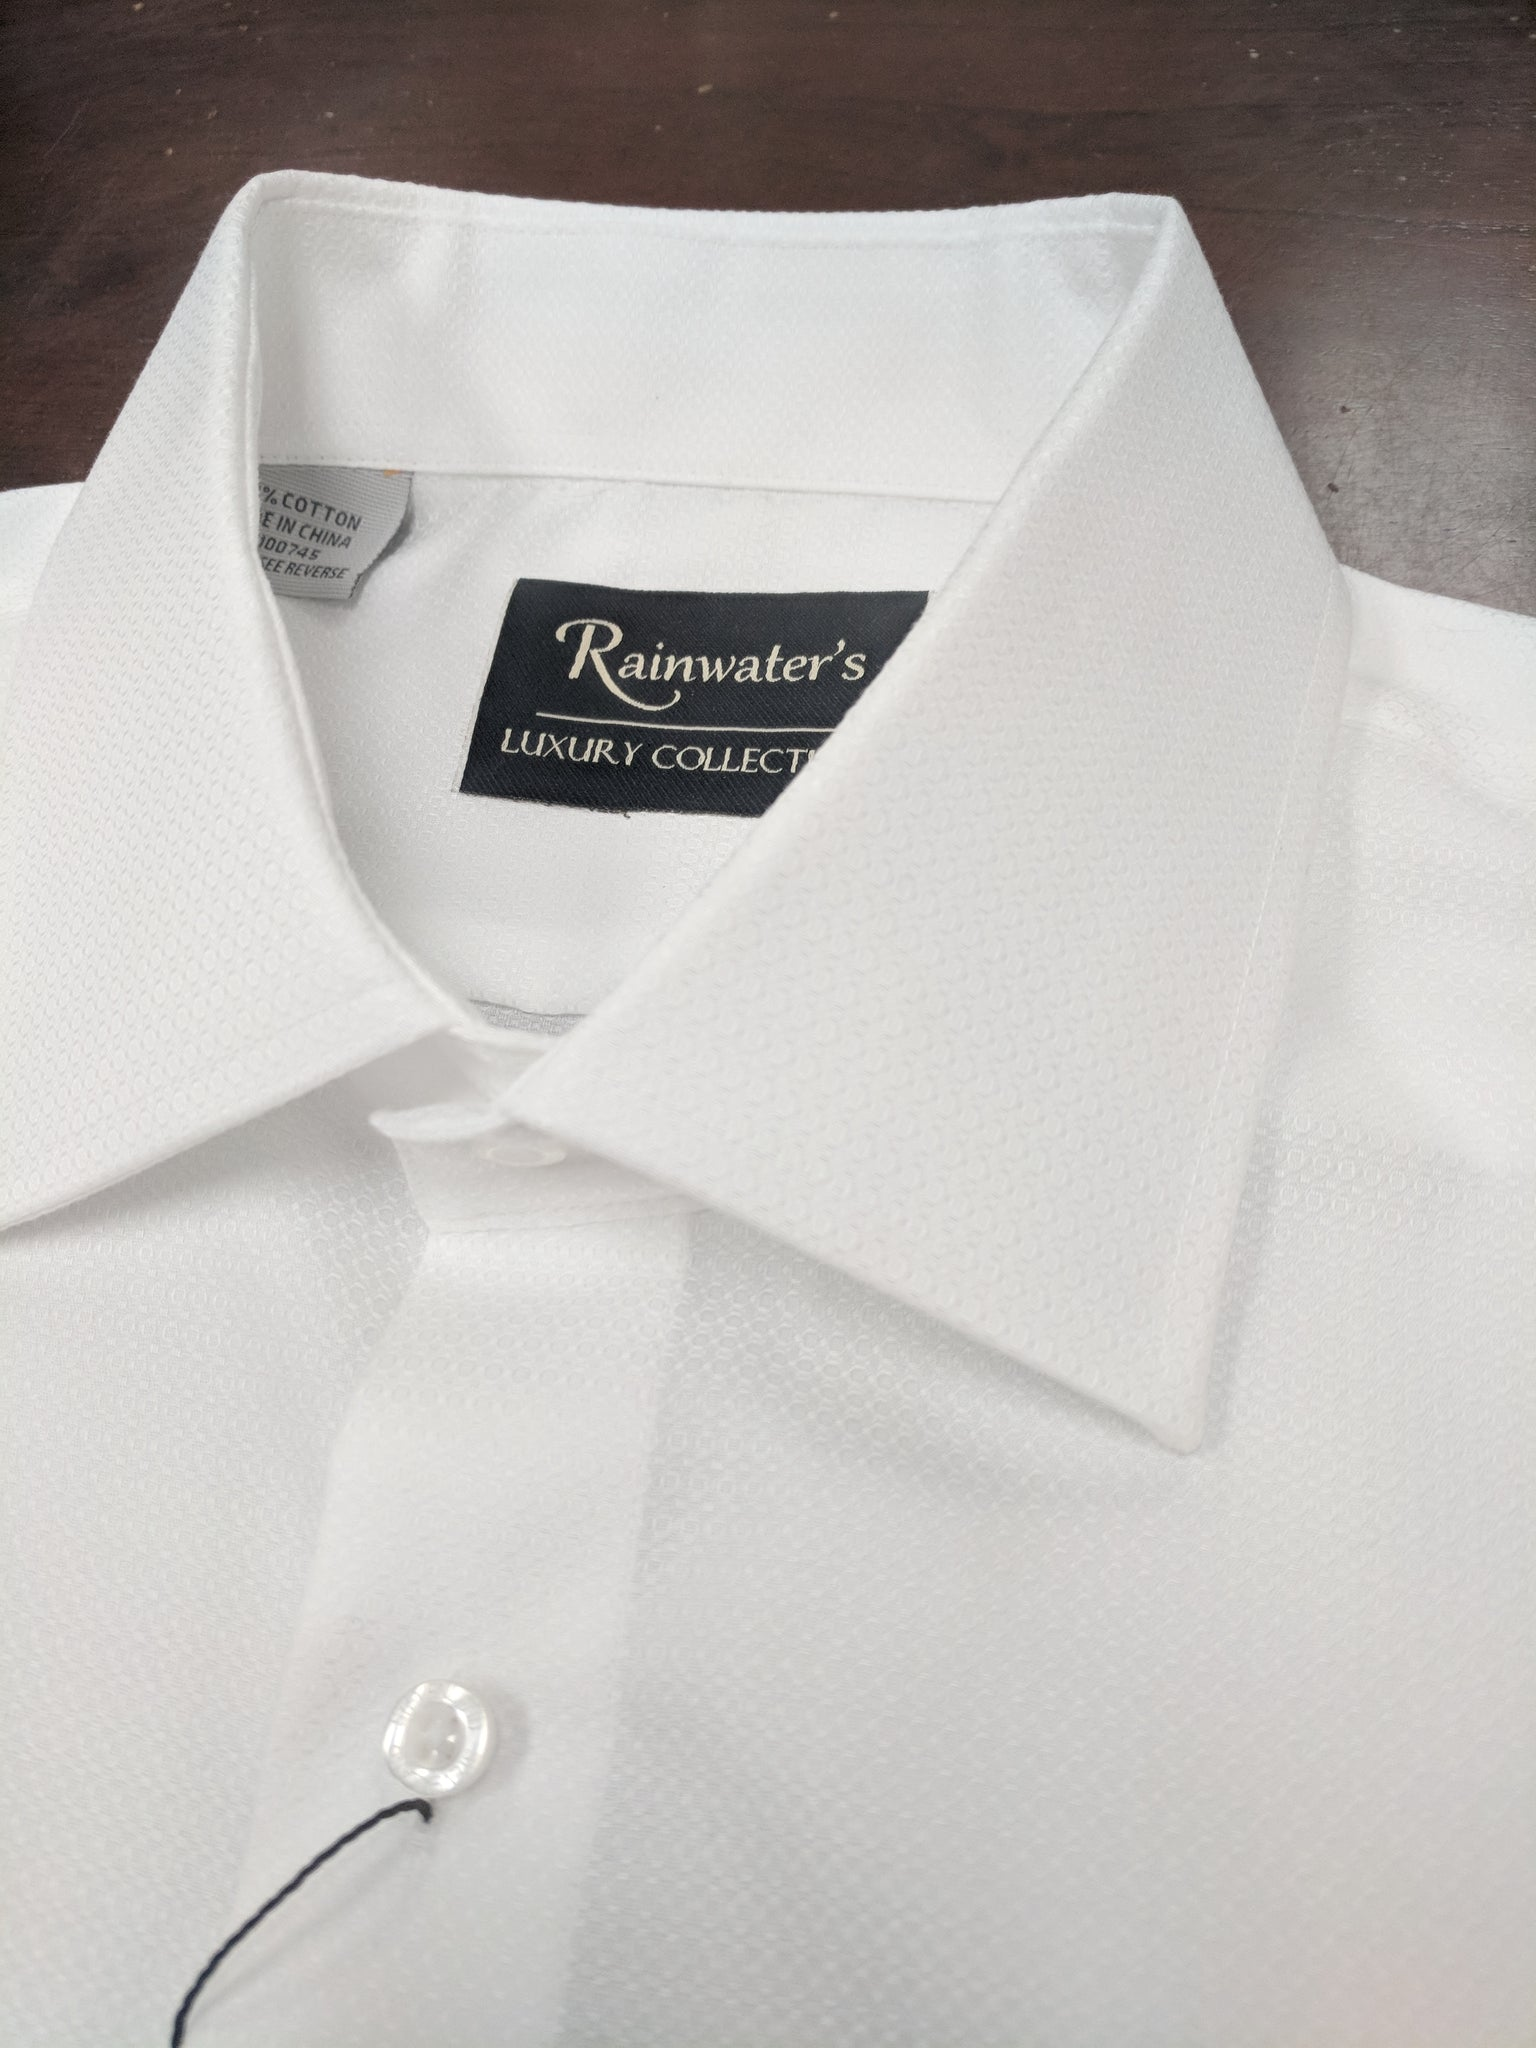 Rainwater's White Tonal Small Neat Dress Shirt - Rainwater's Men's Clothing and Tuxedo Rental